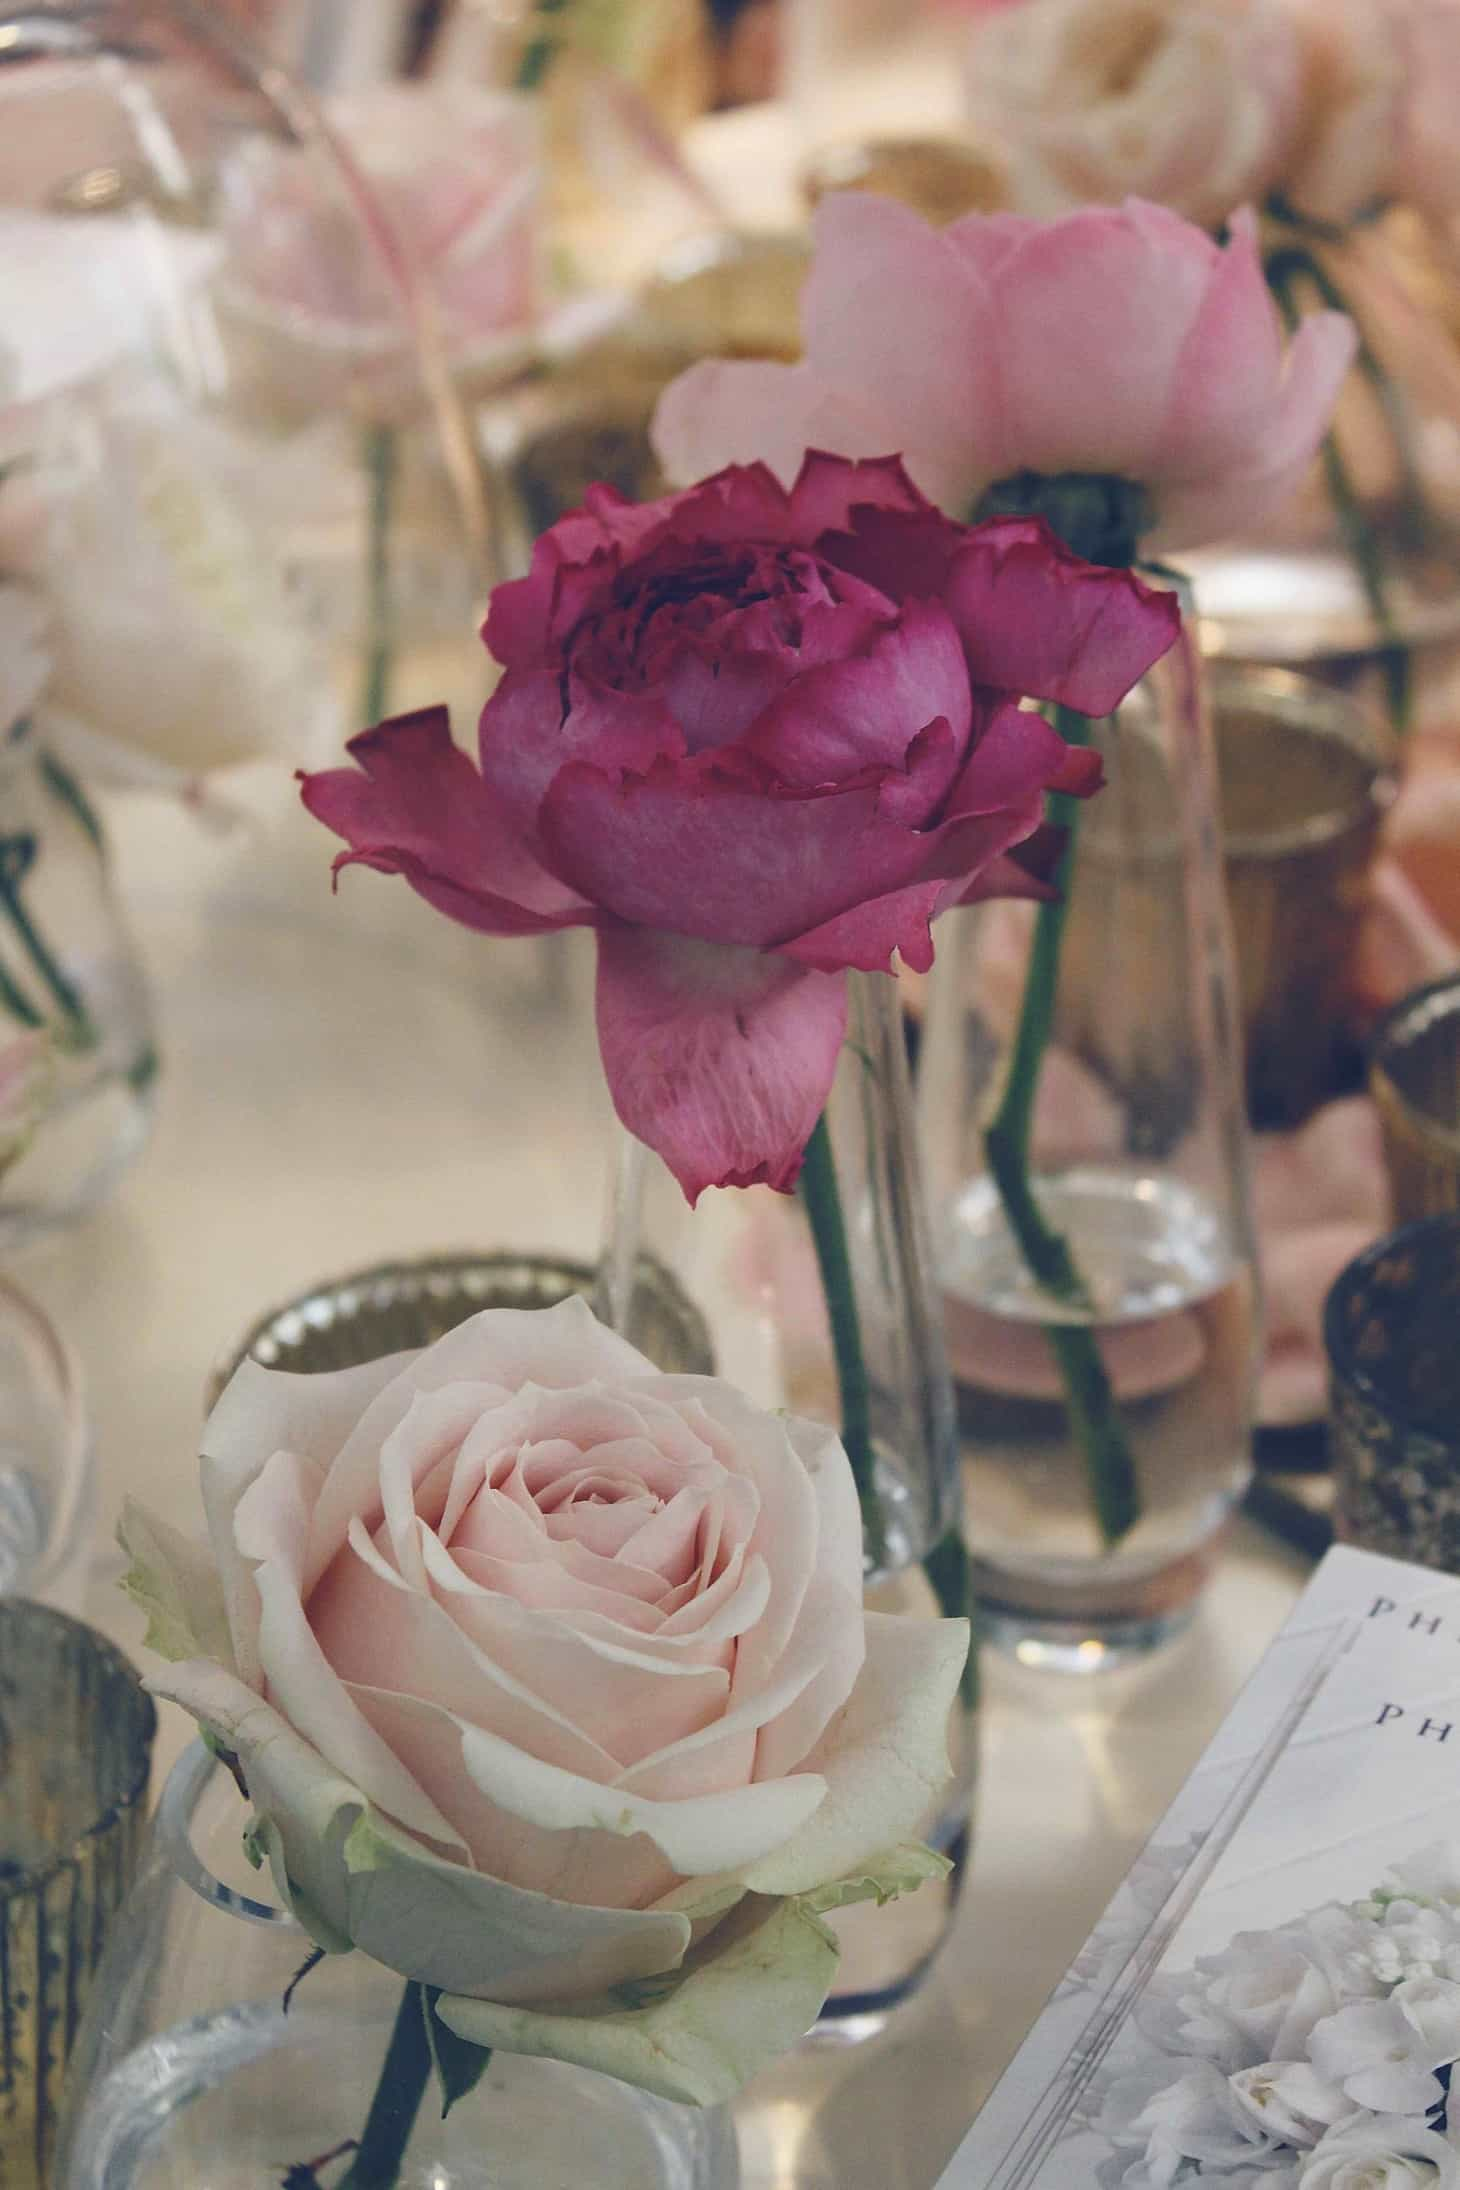 Philippa Craddock at Brides the show, blush roses, floral arch, garden roses